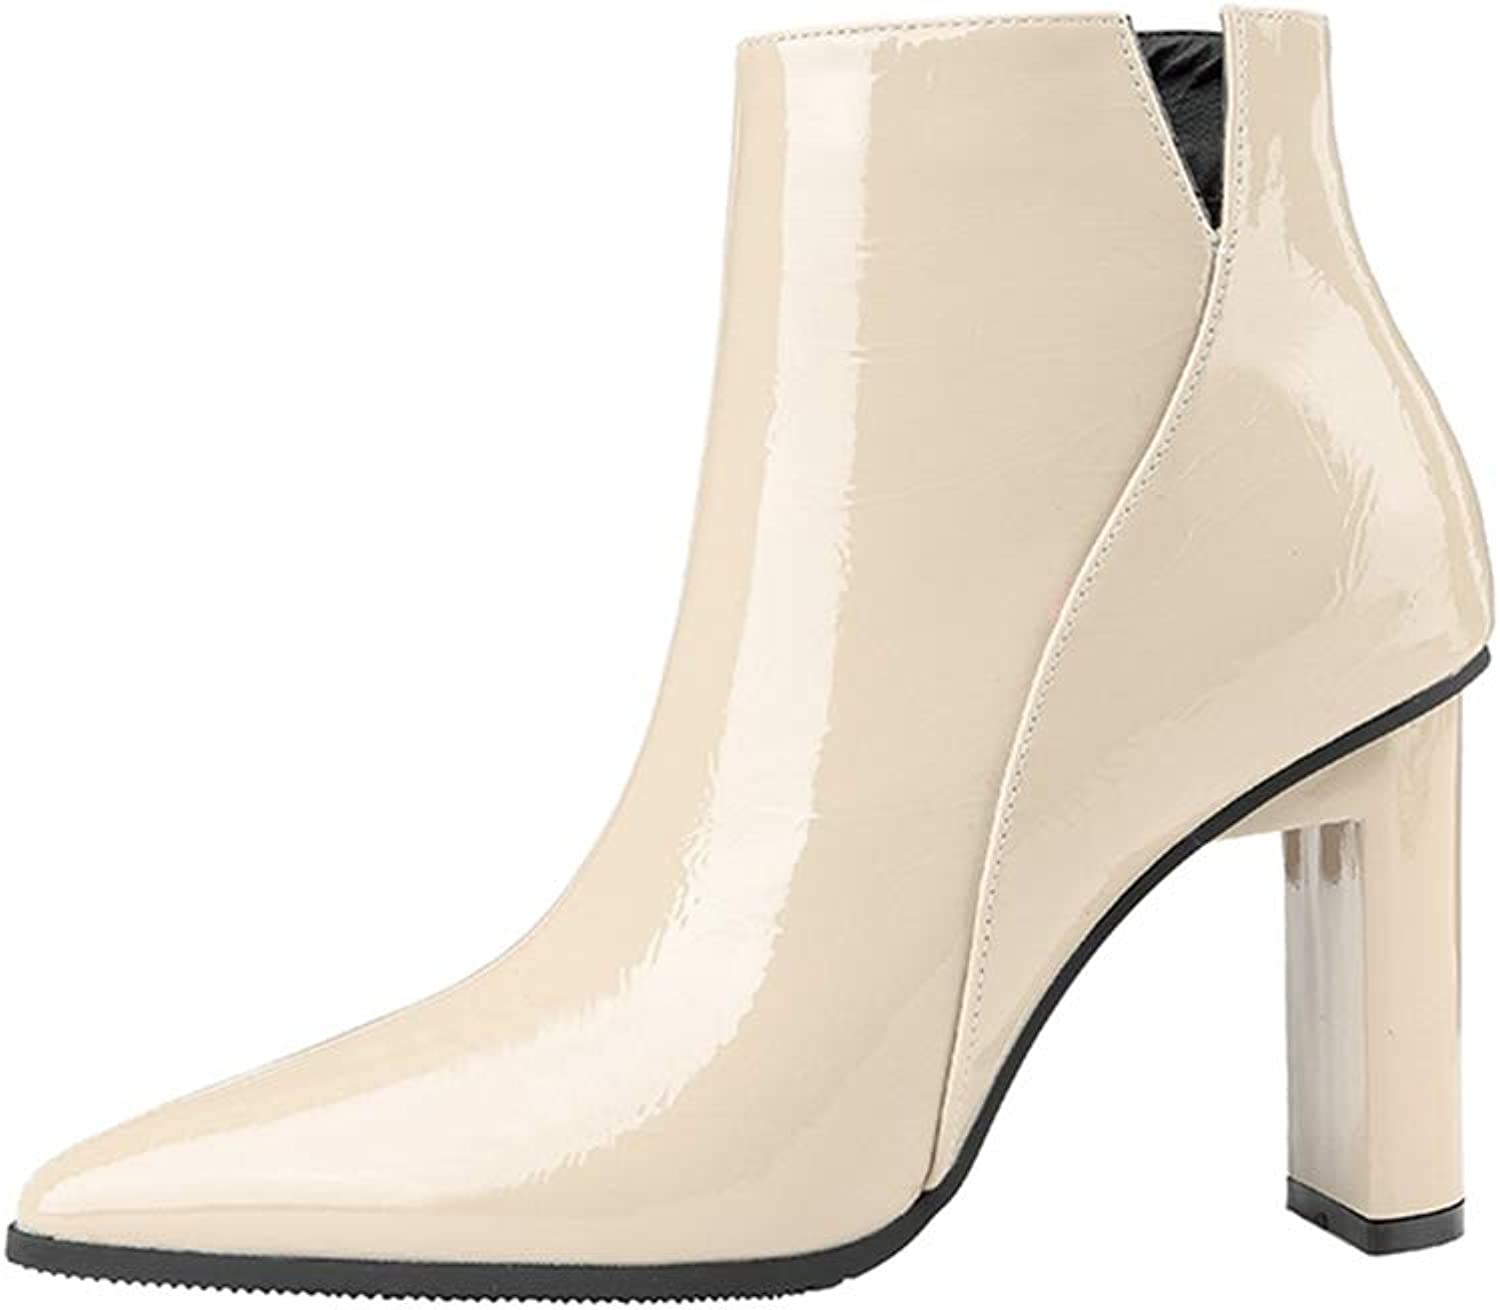 CYBLING Women's Fashion Closed Pointy Toe Ankle Boots V Cut Chunky High Heel Office Dress Booties